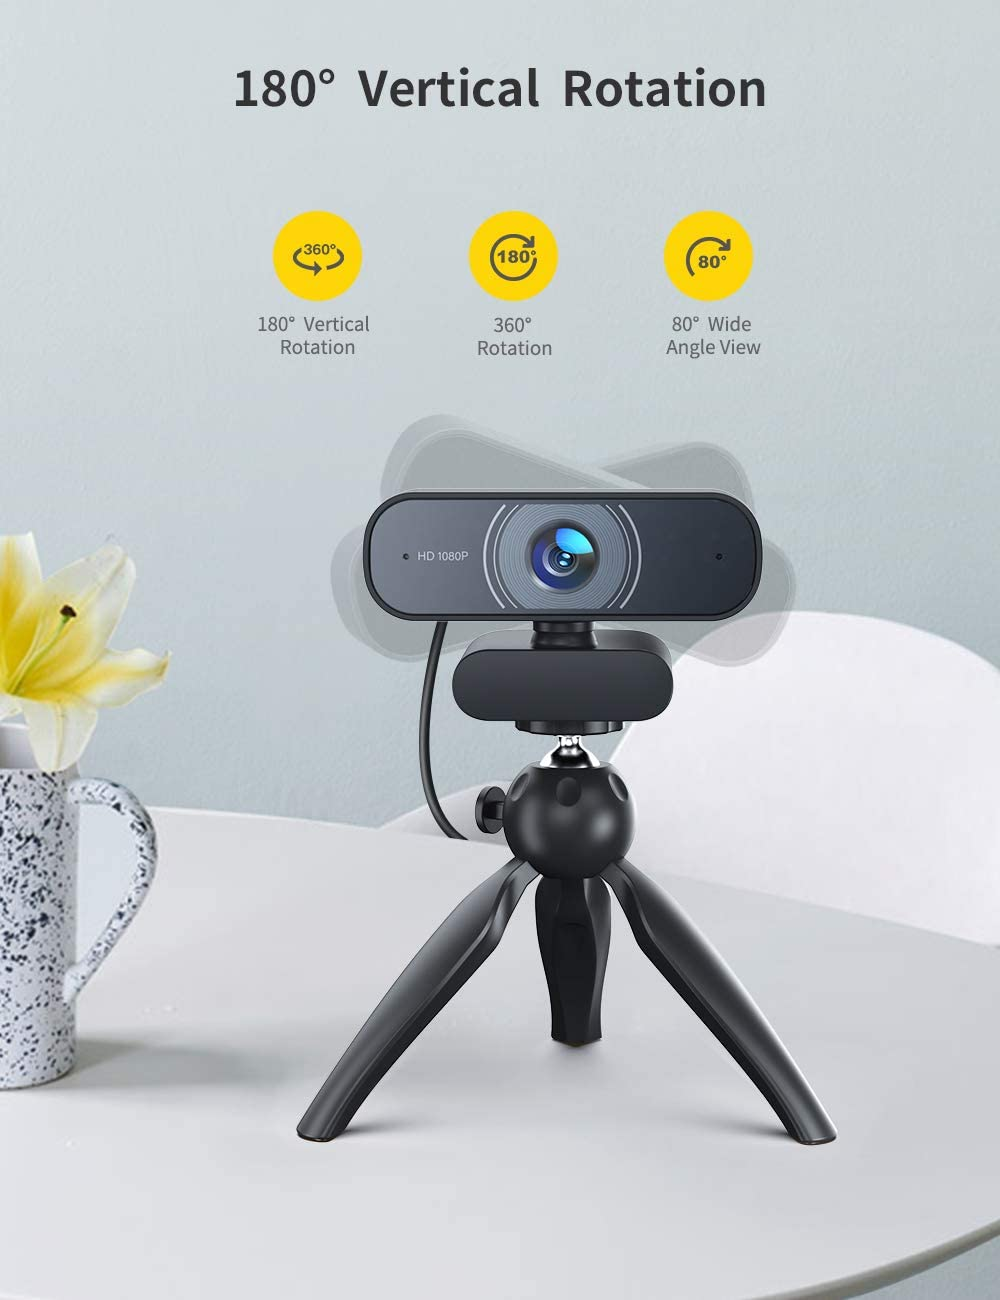 Dual Built-in Microphones Conference Video Calling Streaming RALENO 1080P Webcam Full HD Video Camera for Computers PC Laptop Desktop USB Plug and Play